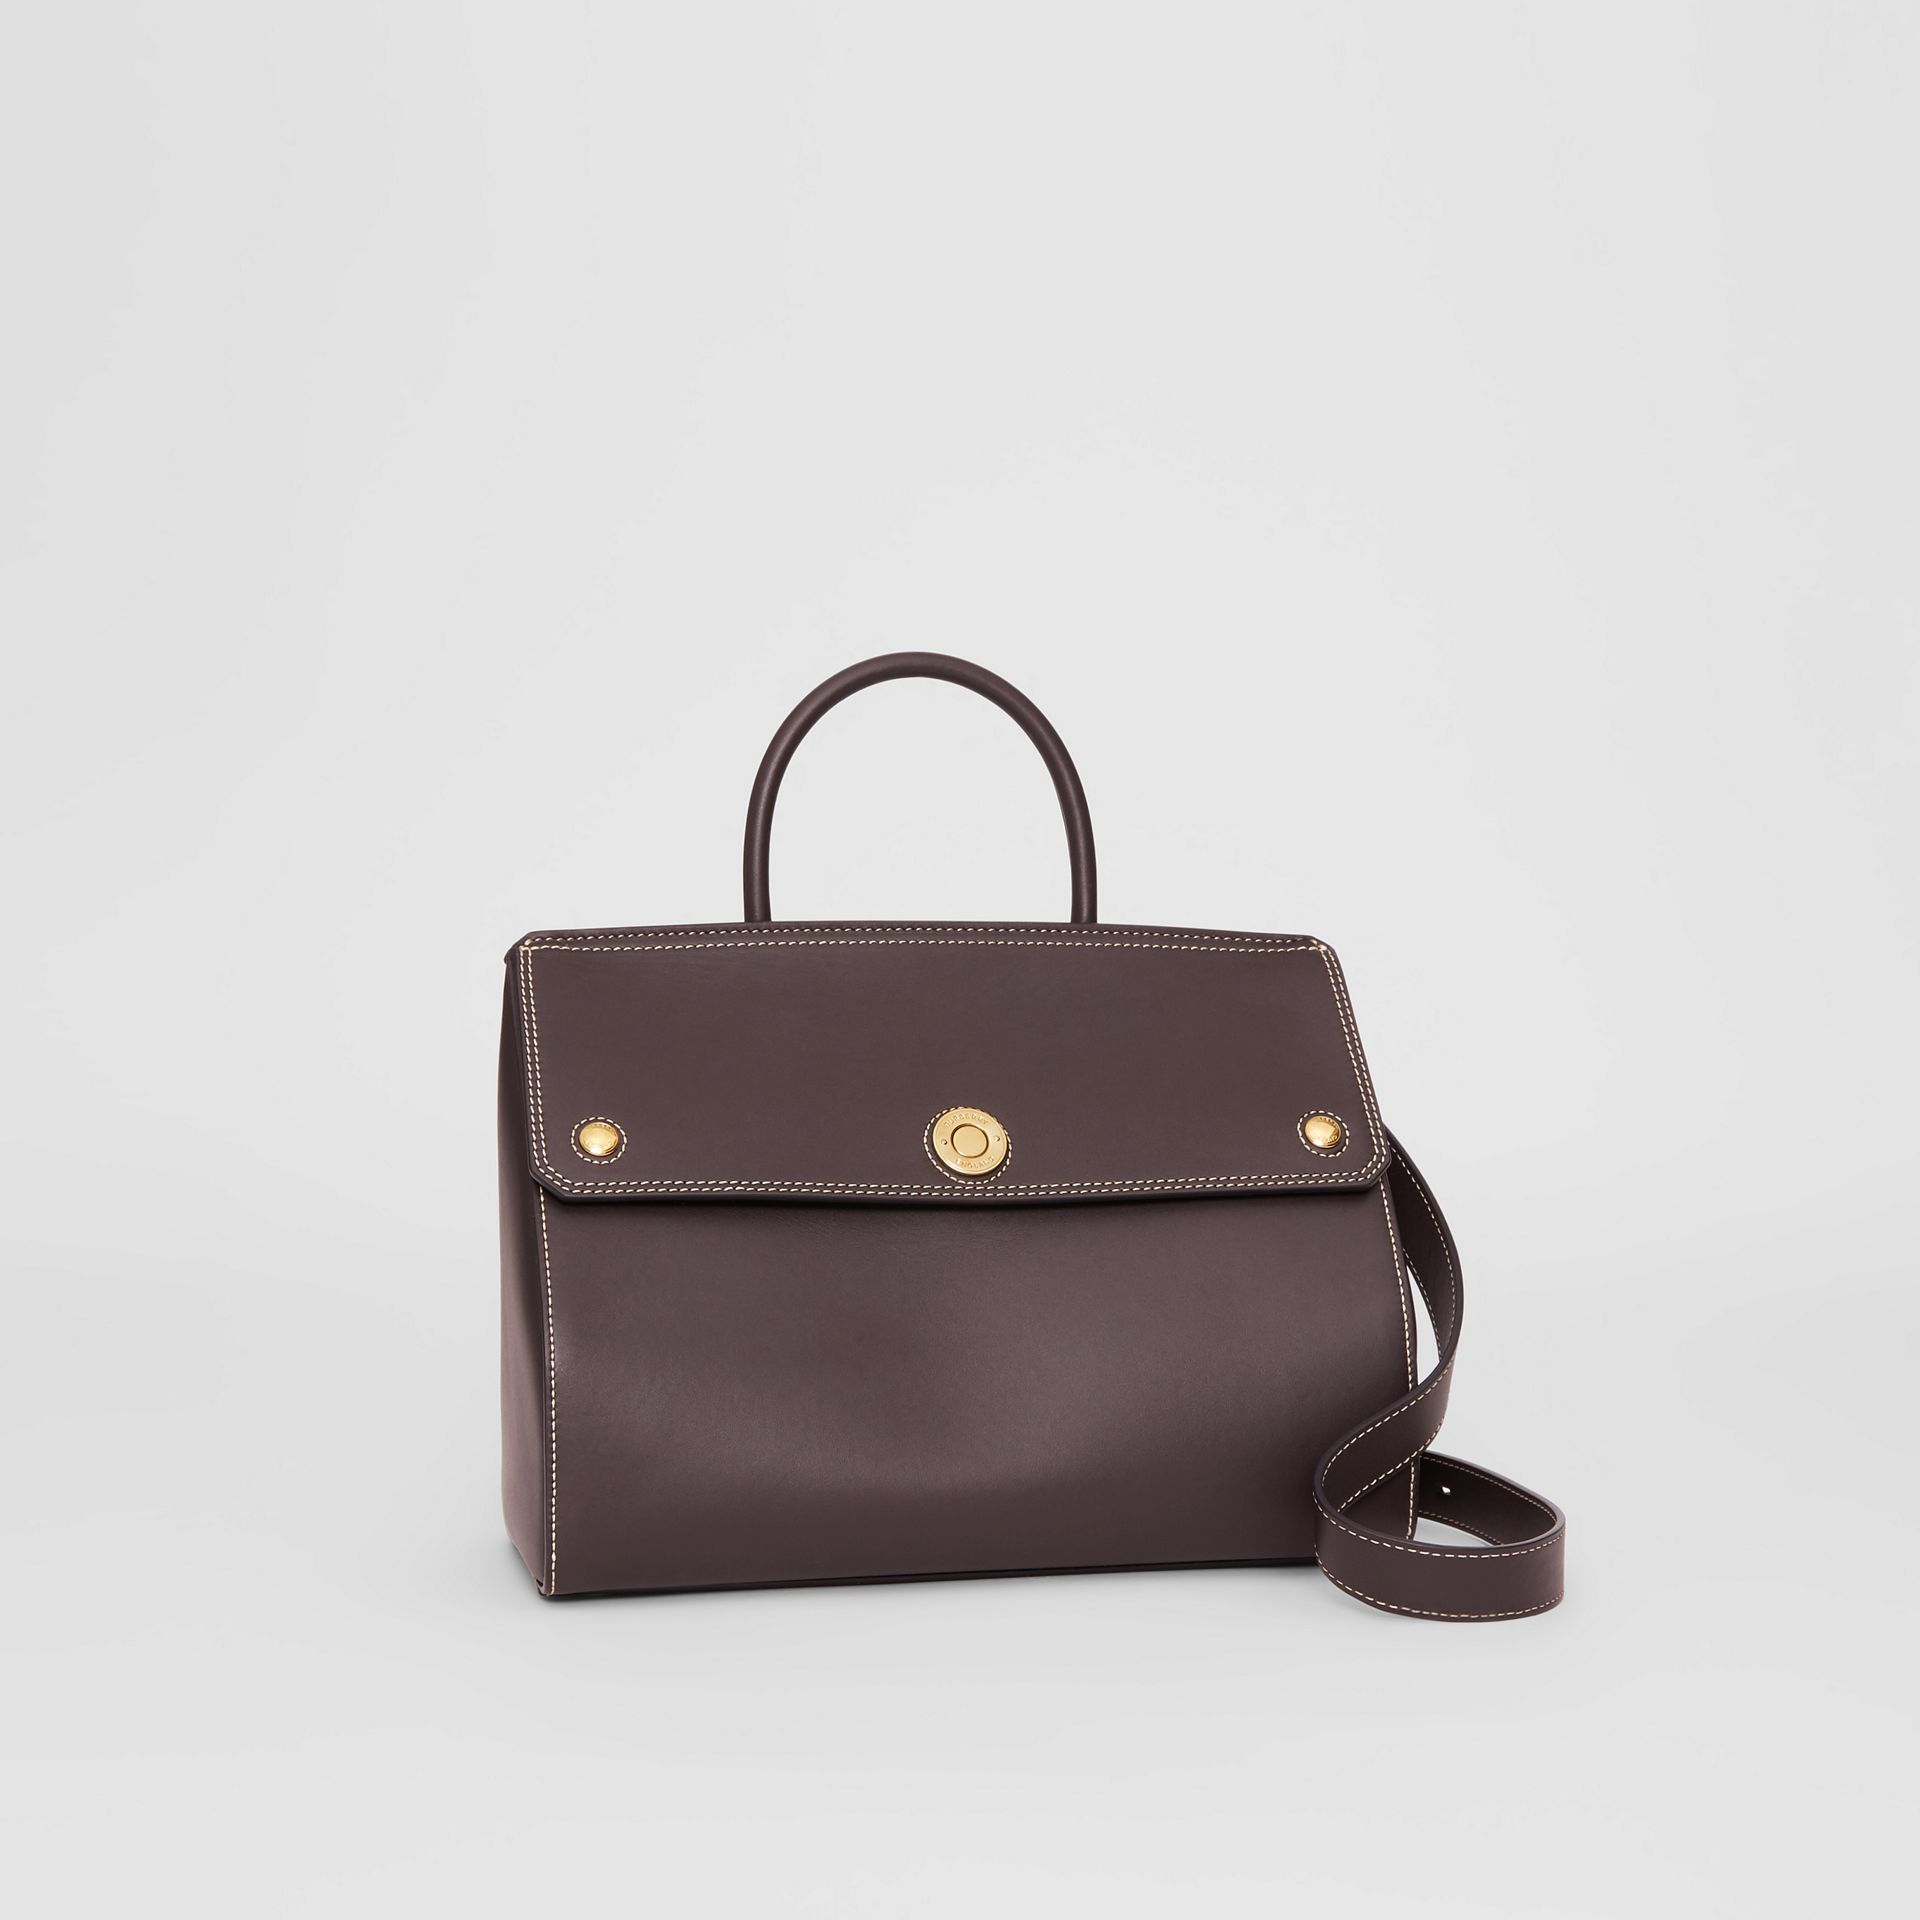 Small Leather Elizabeth Bag in Coffee - Women | Burberry Canada - gallery image 6